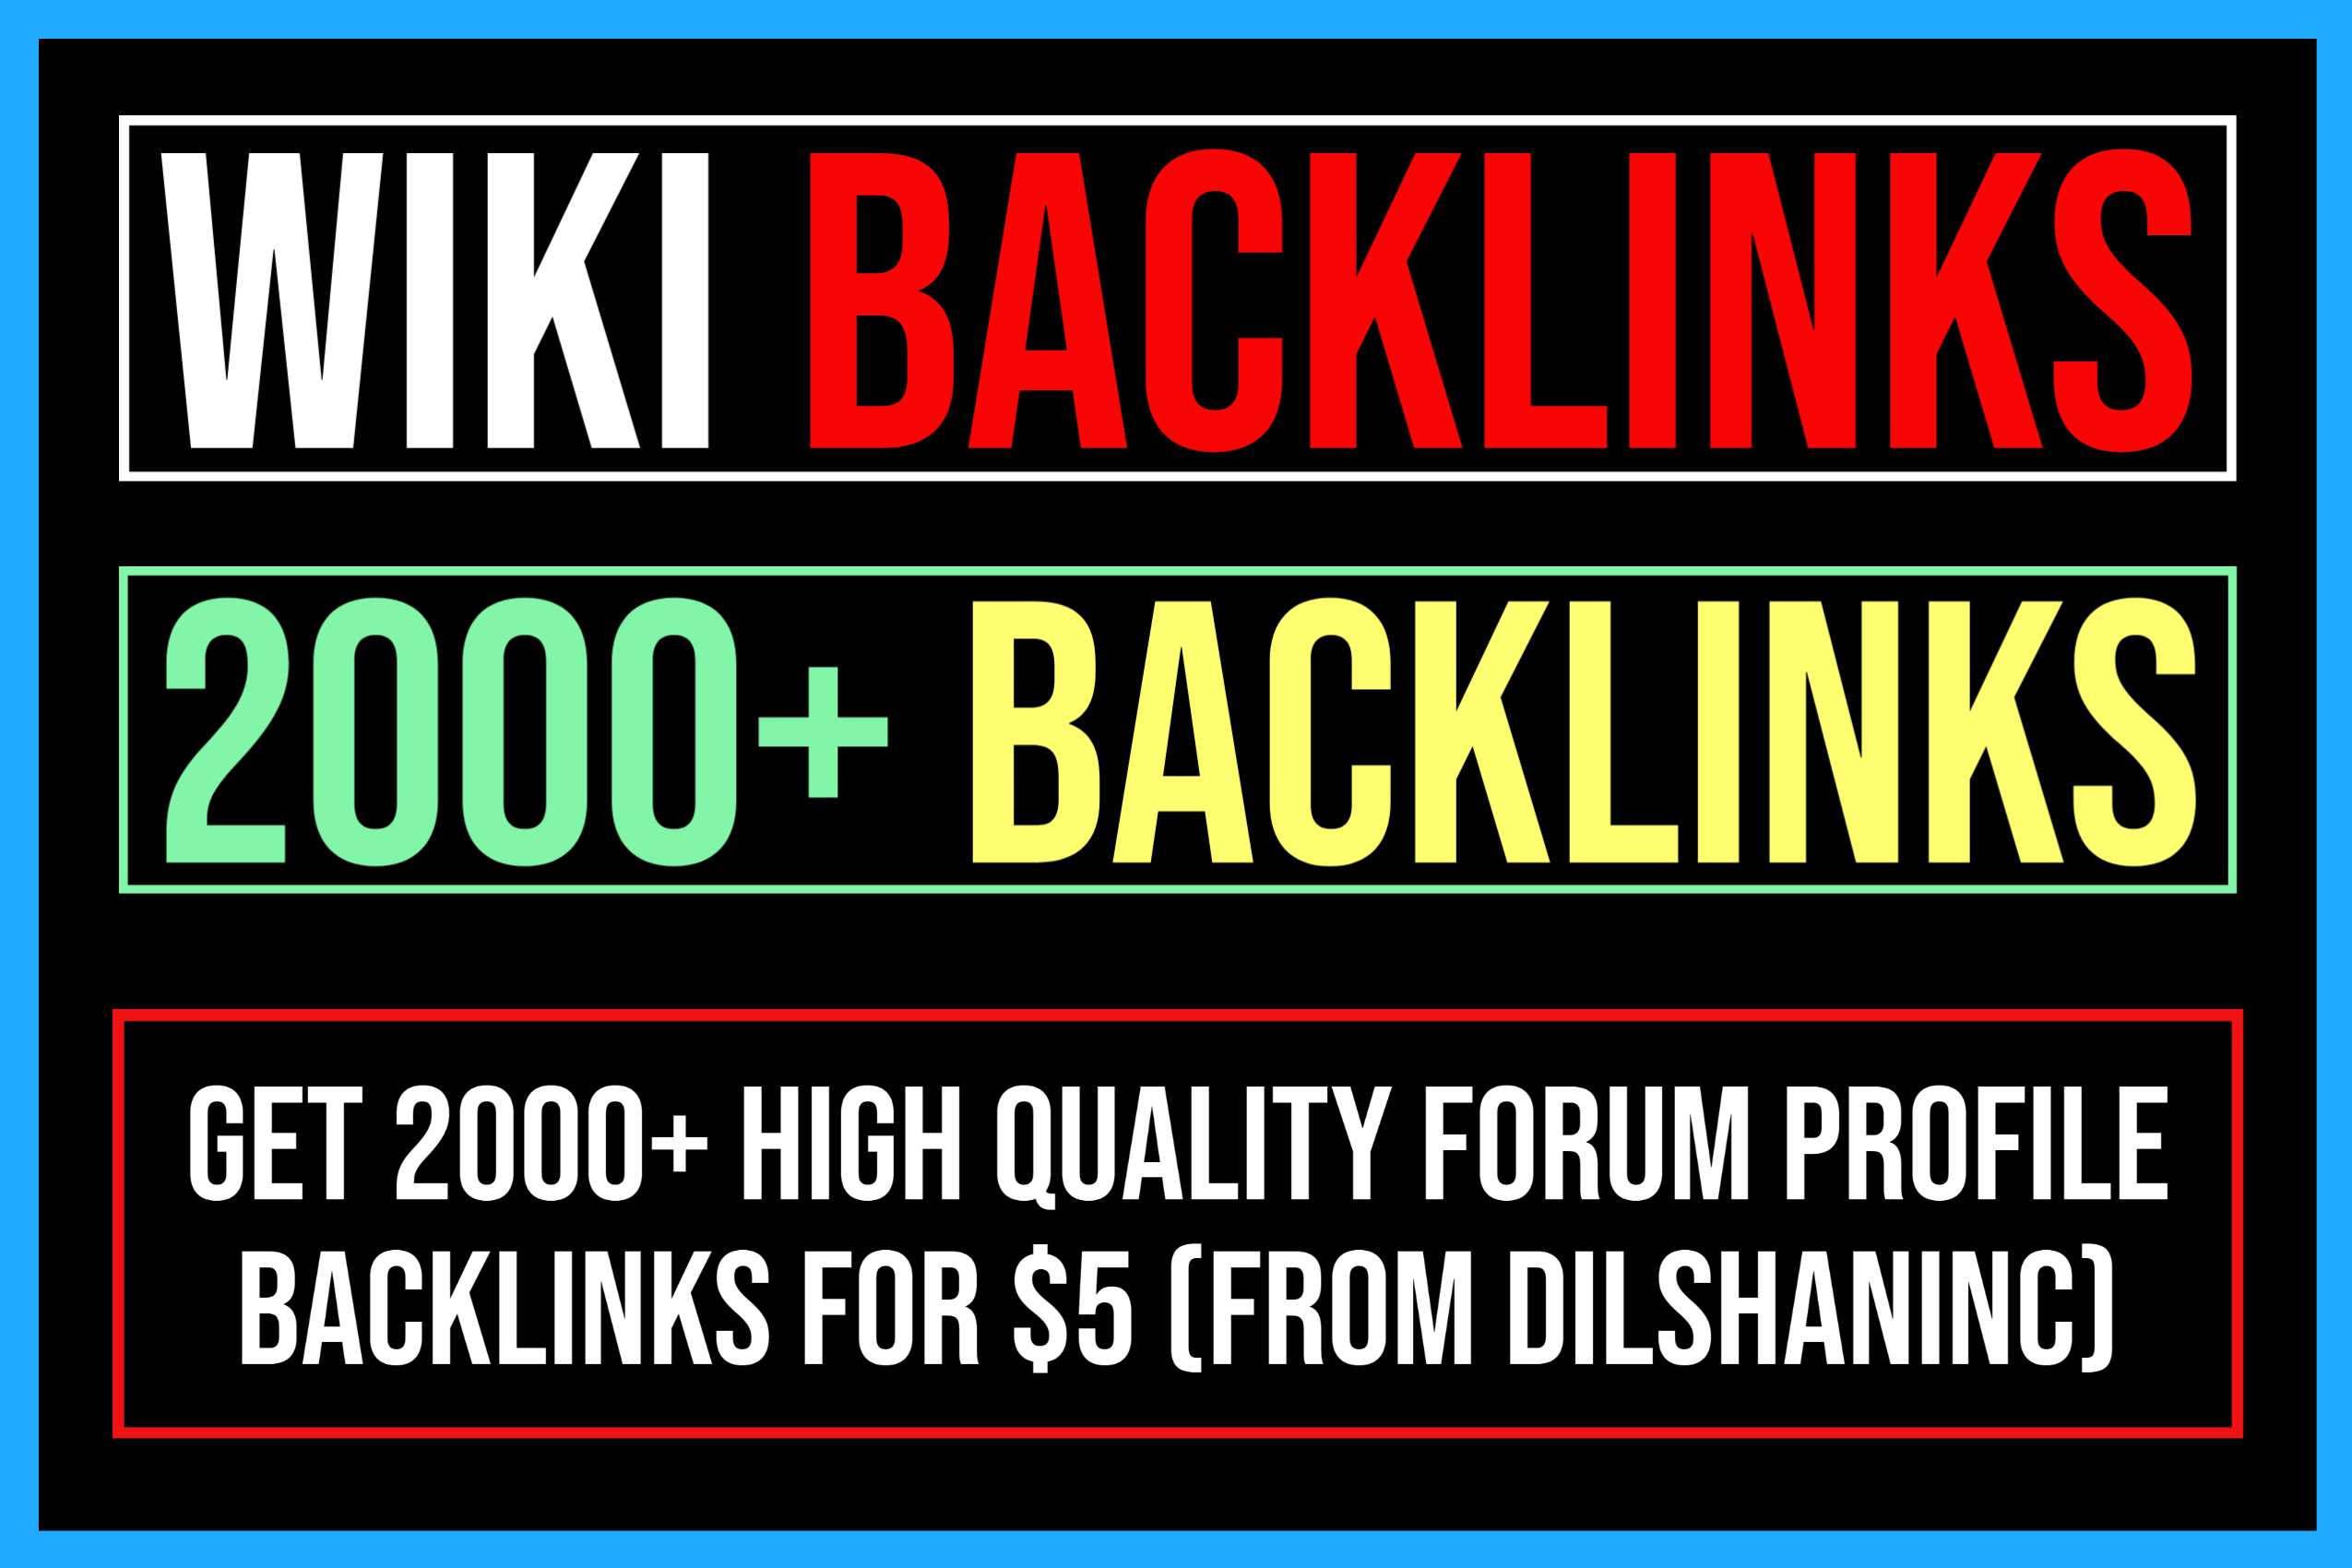 2000+ High Quality Wiki Articles Backlinks